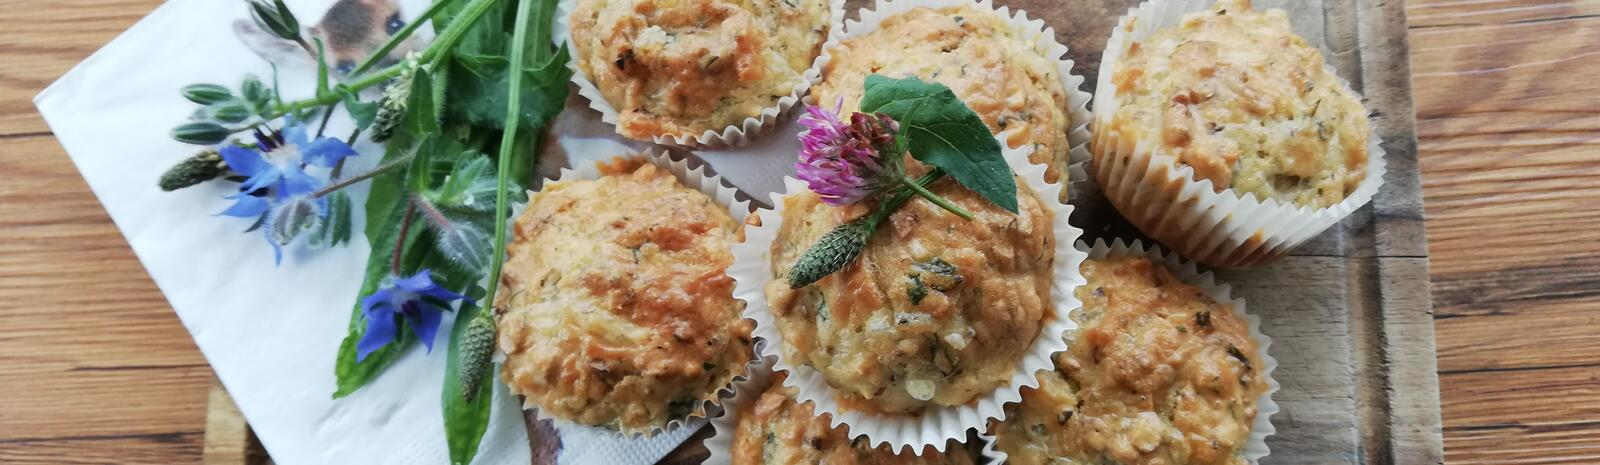 Mountain Cheese & Cranberry Muffins